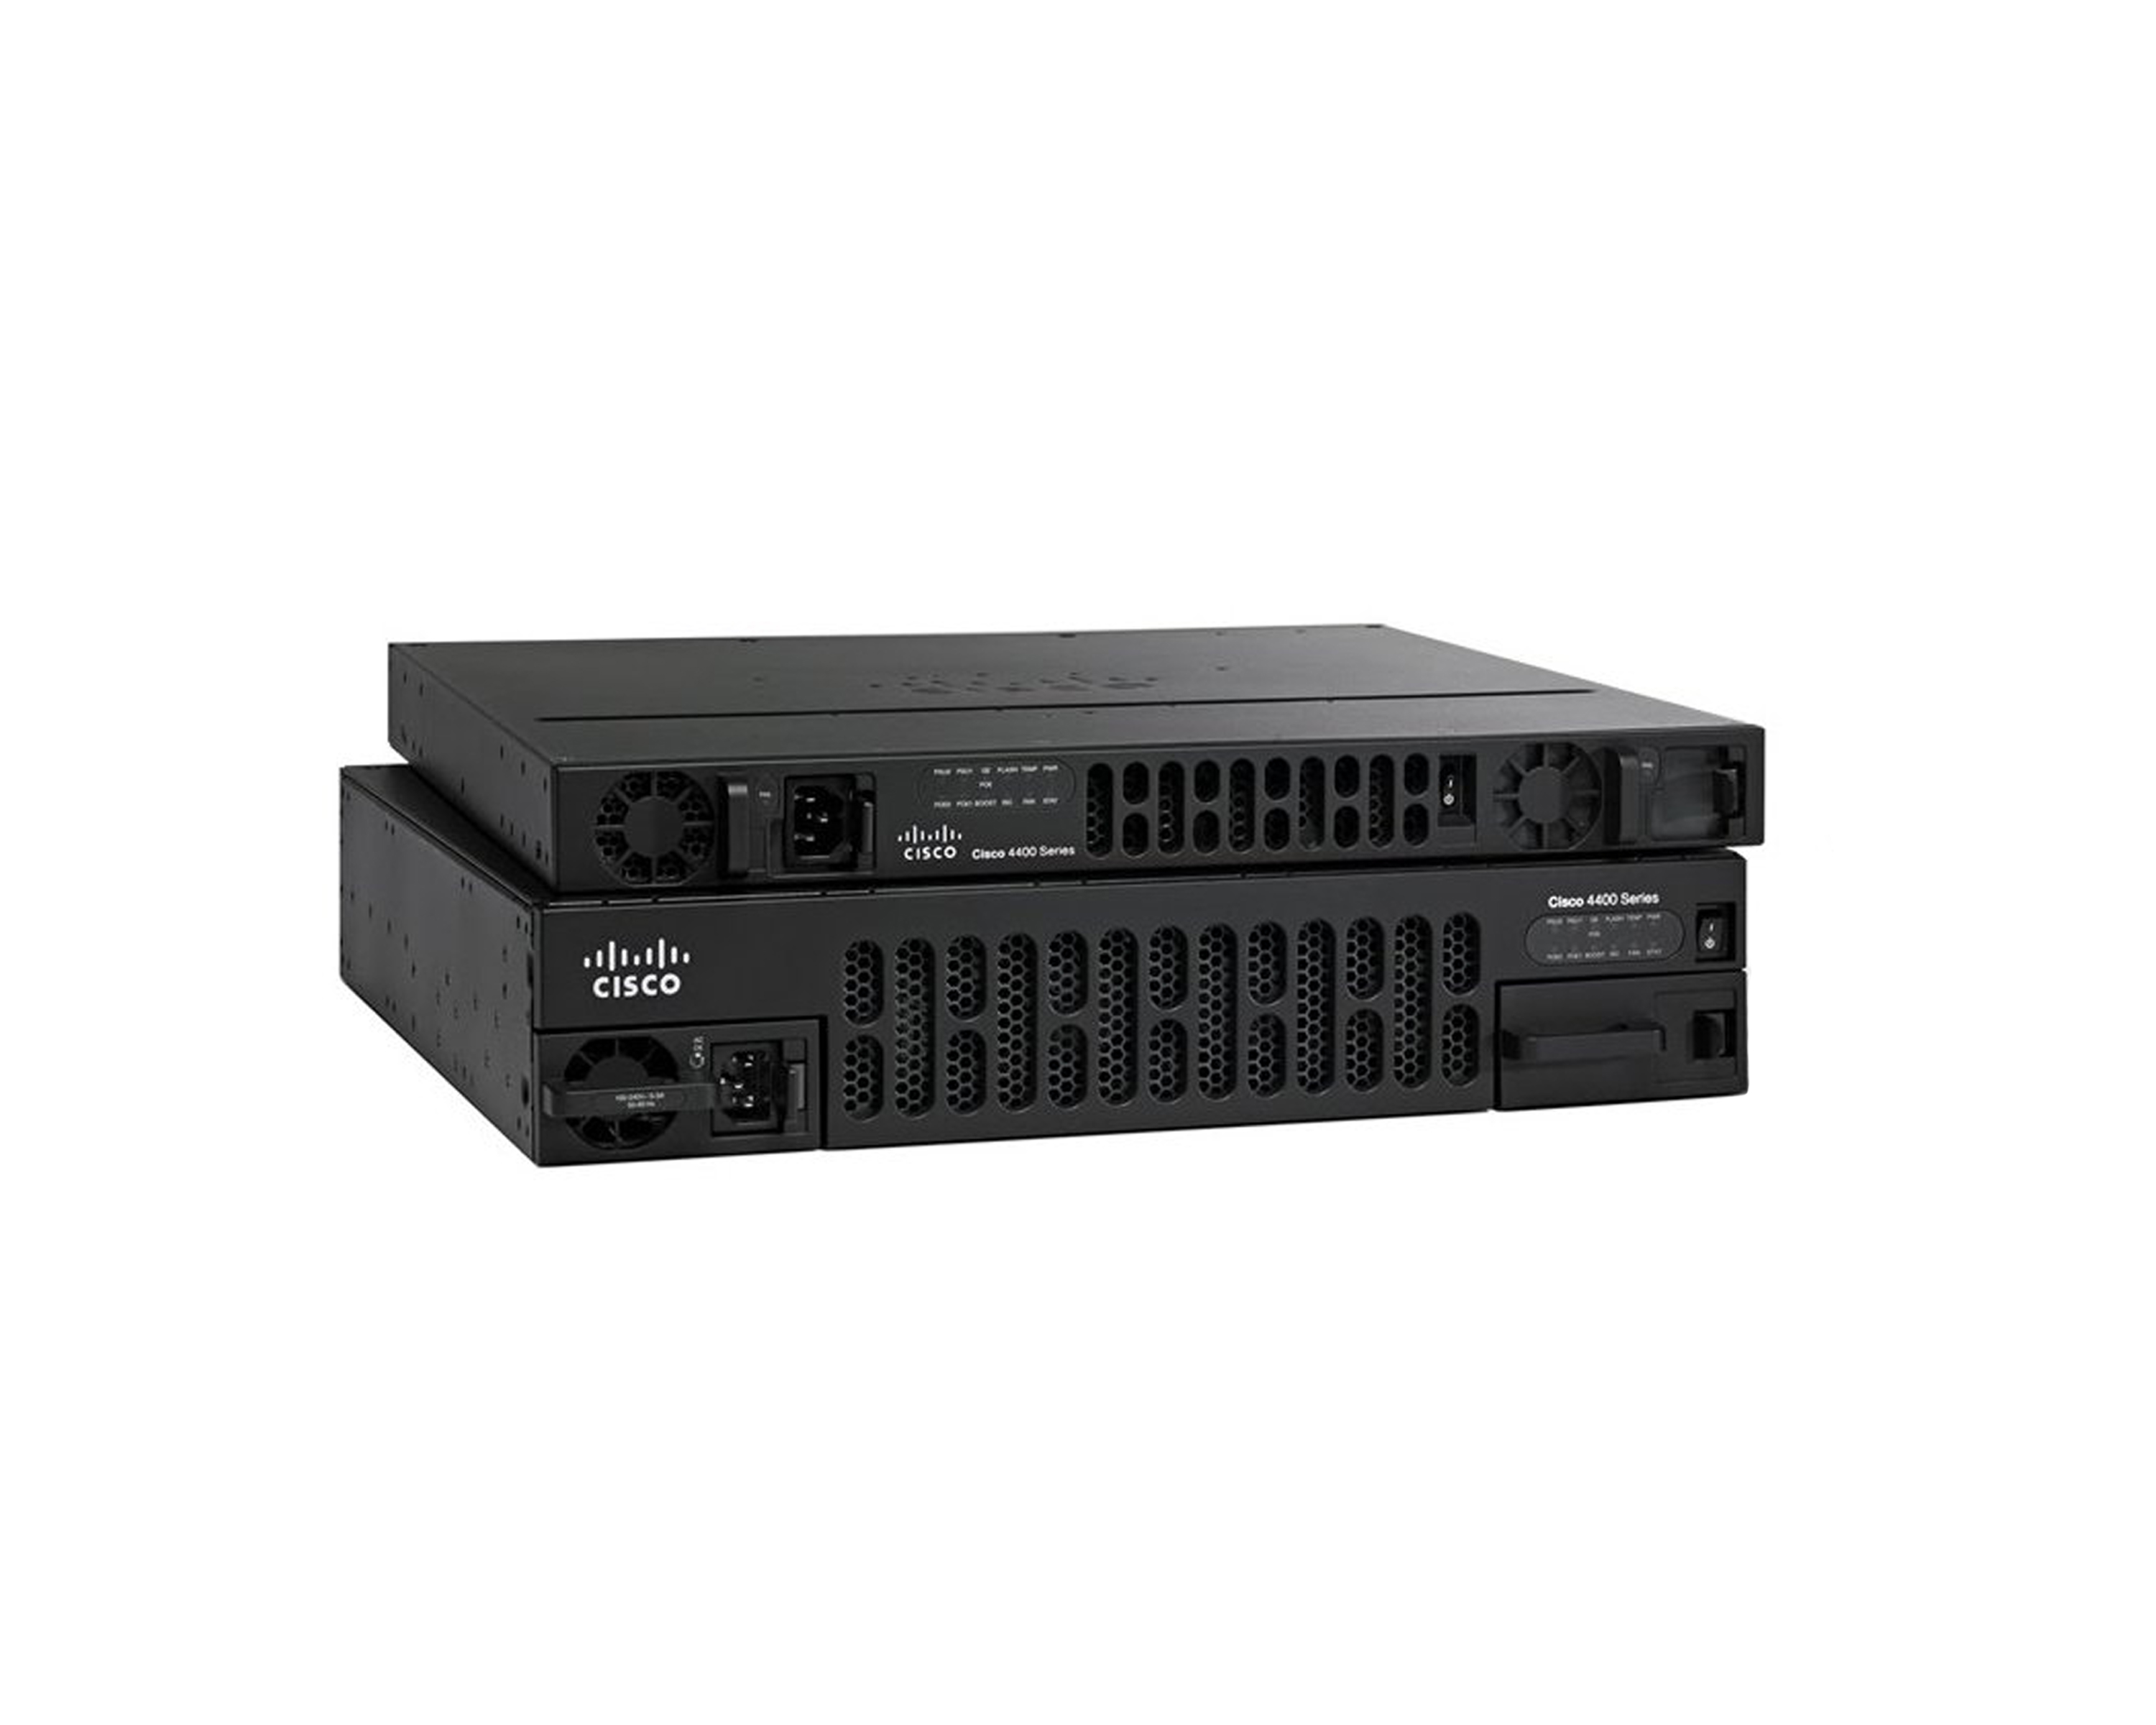 NEW CISCO ISR4451-X/K9 INTEGRATED SERVICES ROUTER 4451 ISR with 4 onboard GE